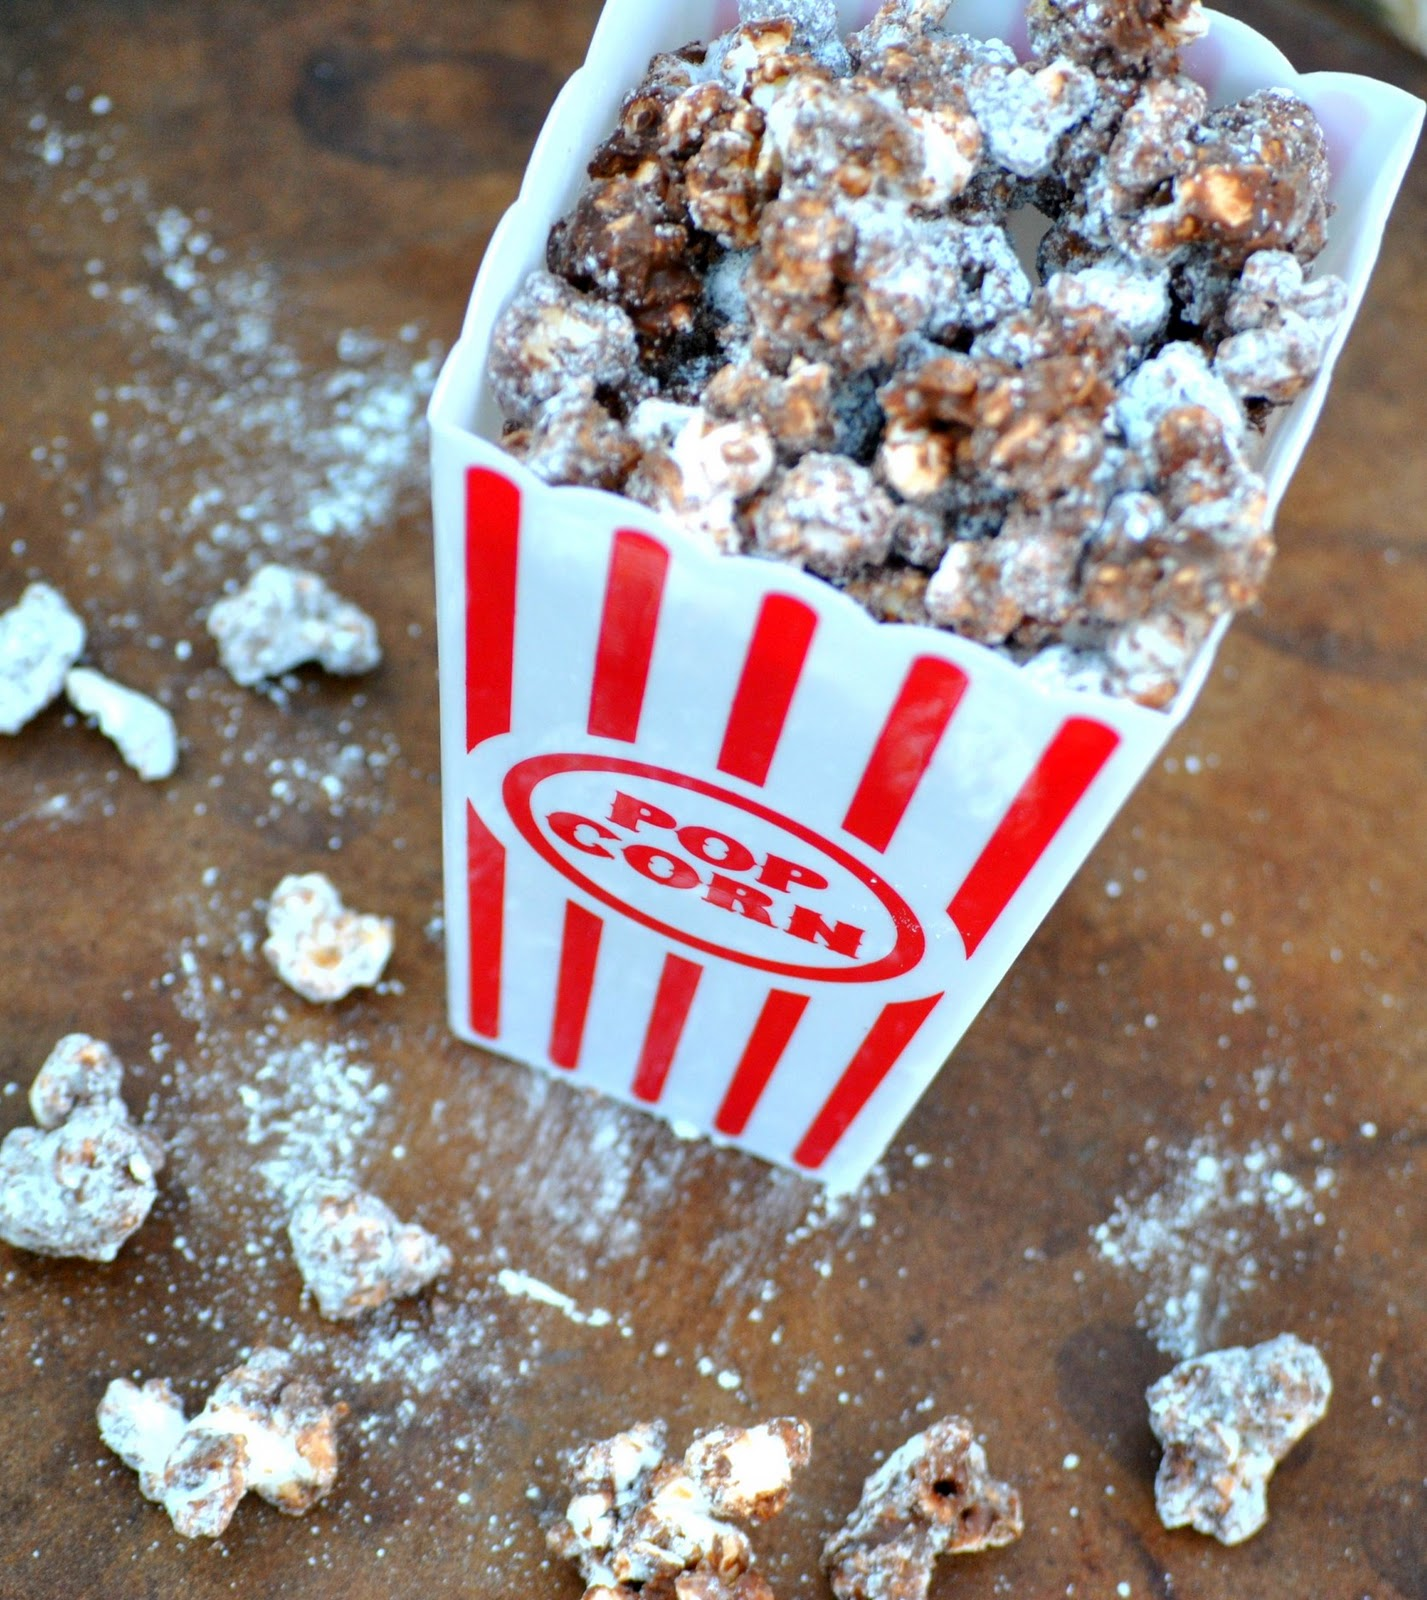 The Farm Girl Recipes: Peanut Butter Chocolate Popcorn